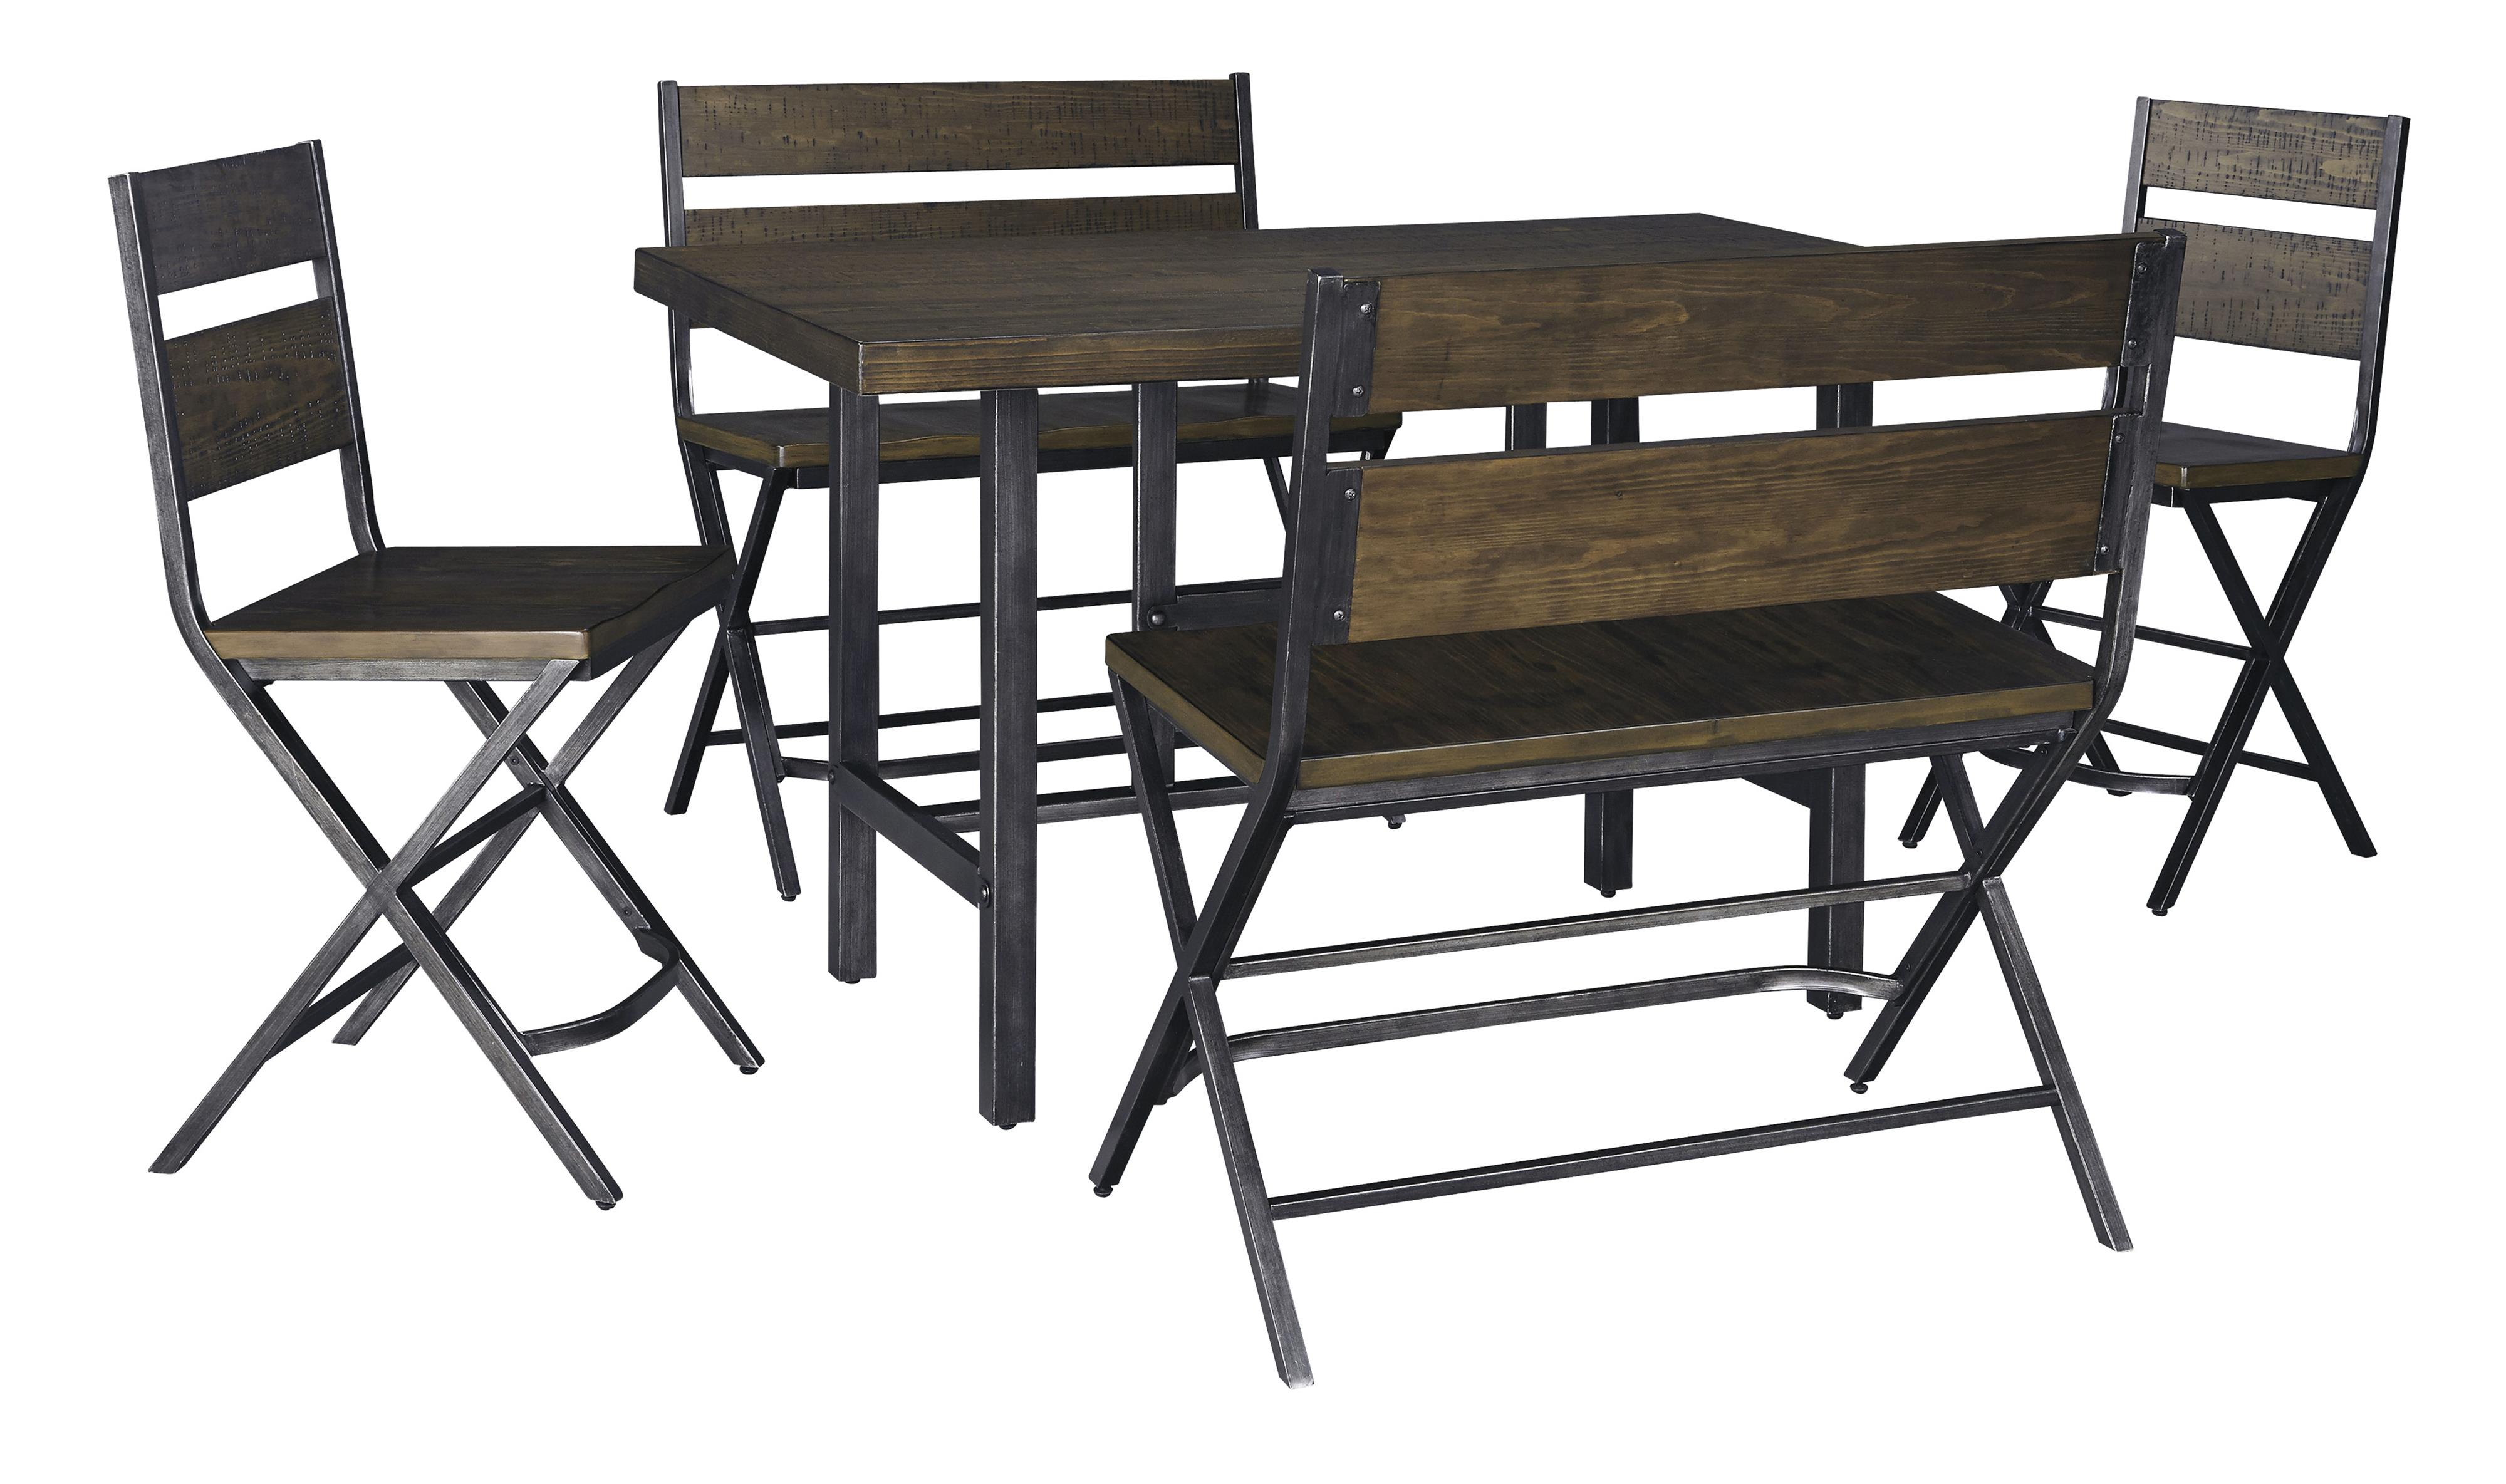 5 Piece Counter Table W 2 Bar Stool And 2 Double Bar Stool Set By Signature Design By Ashley